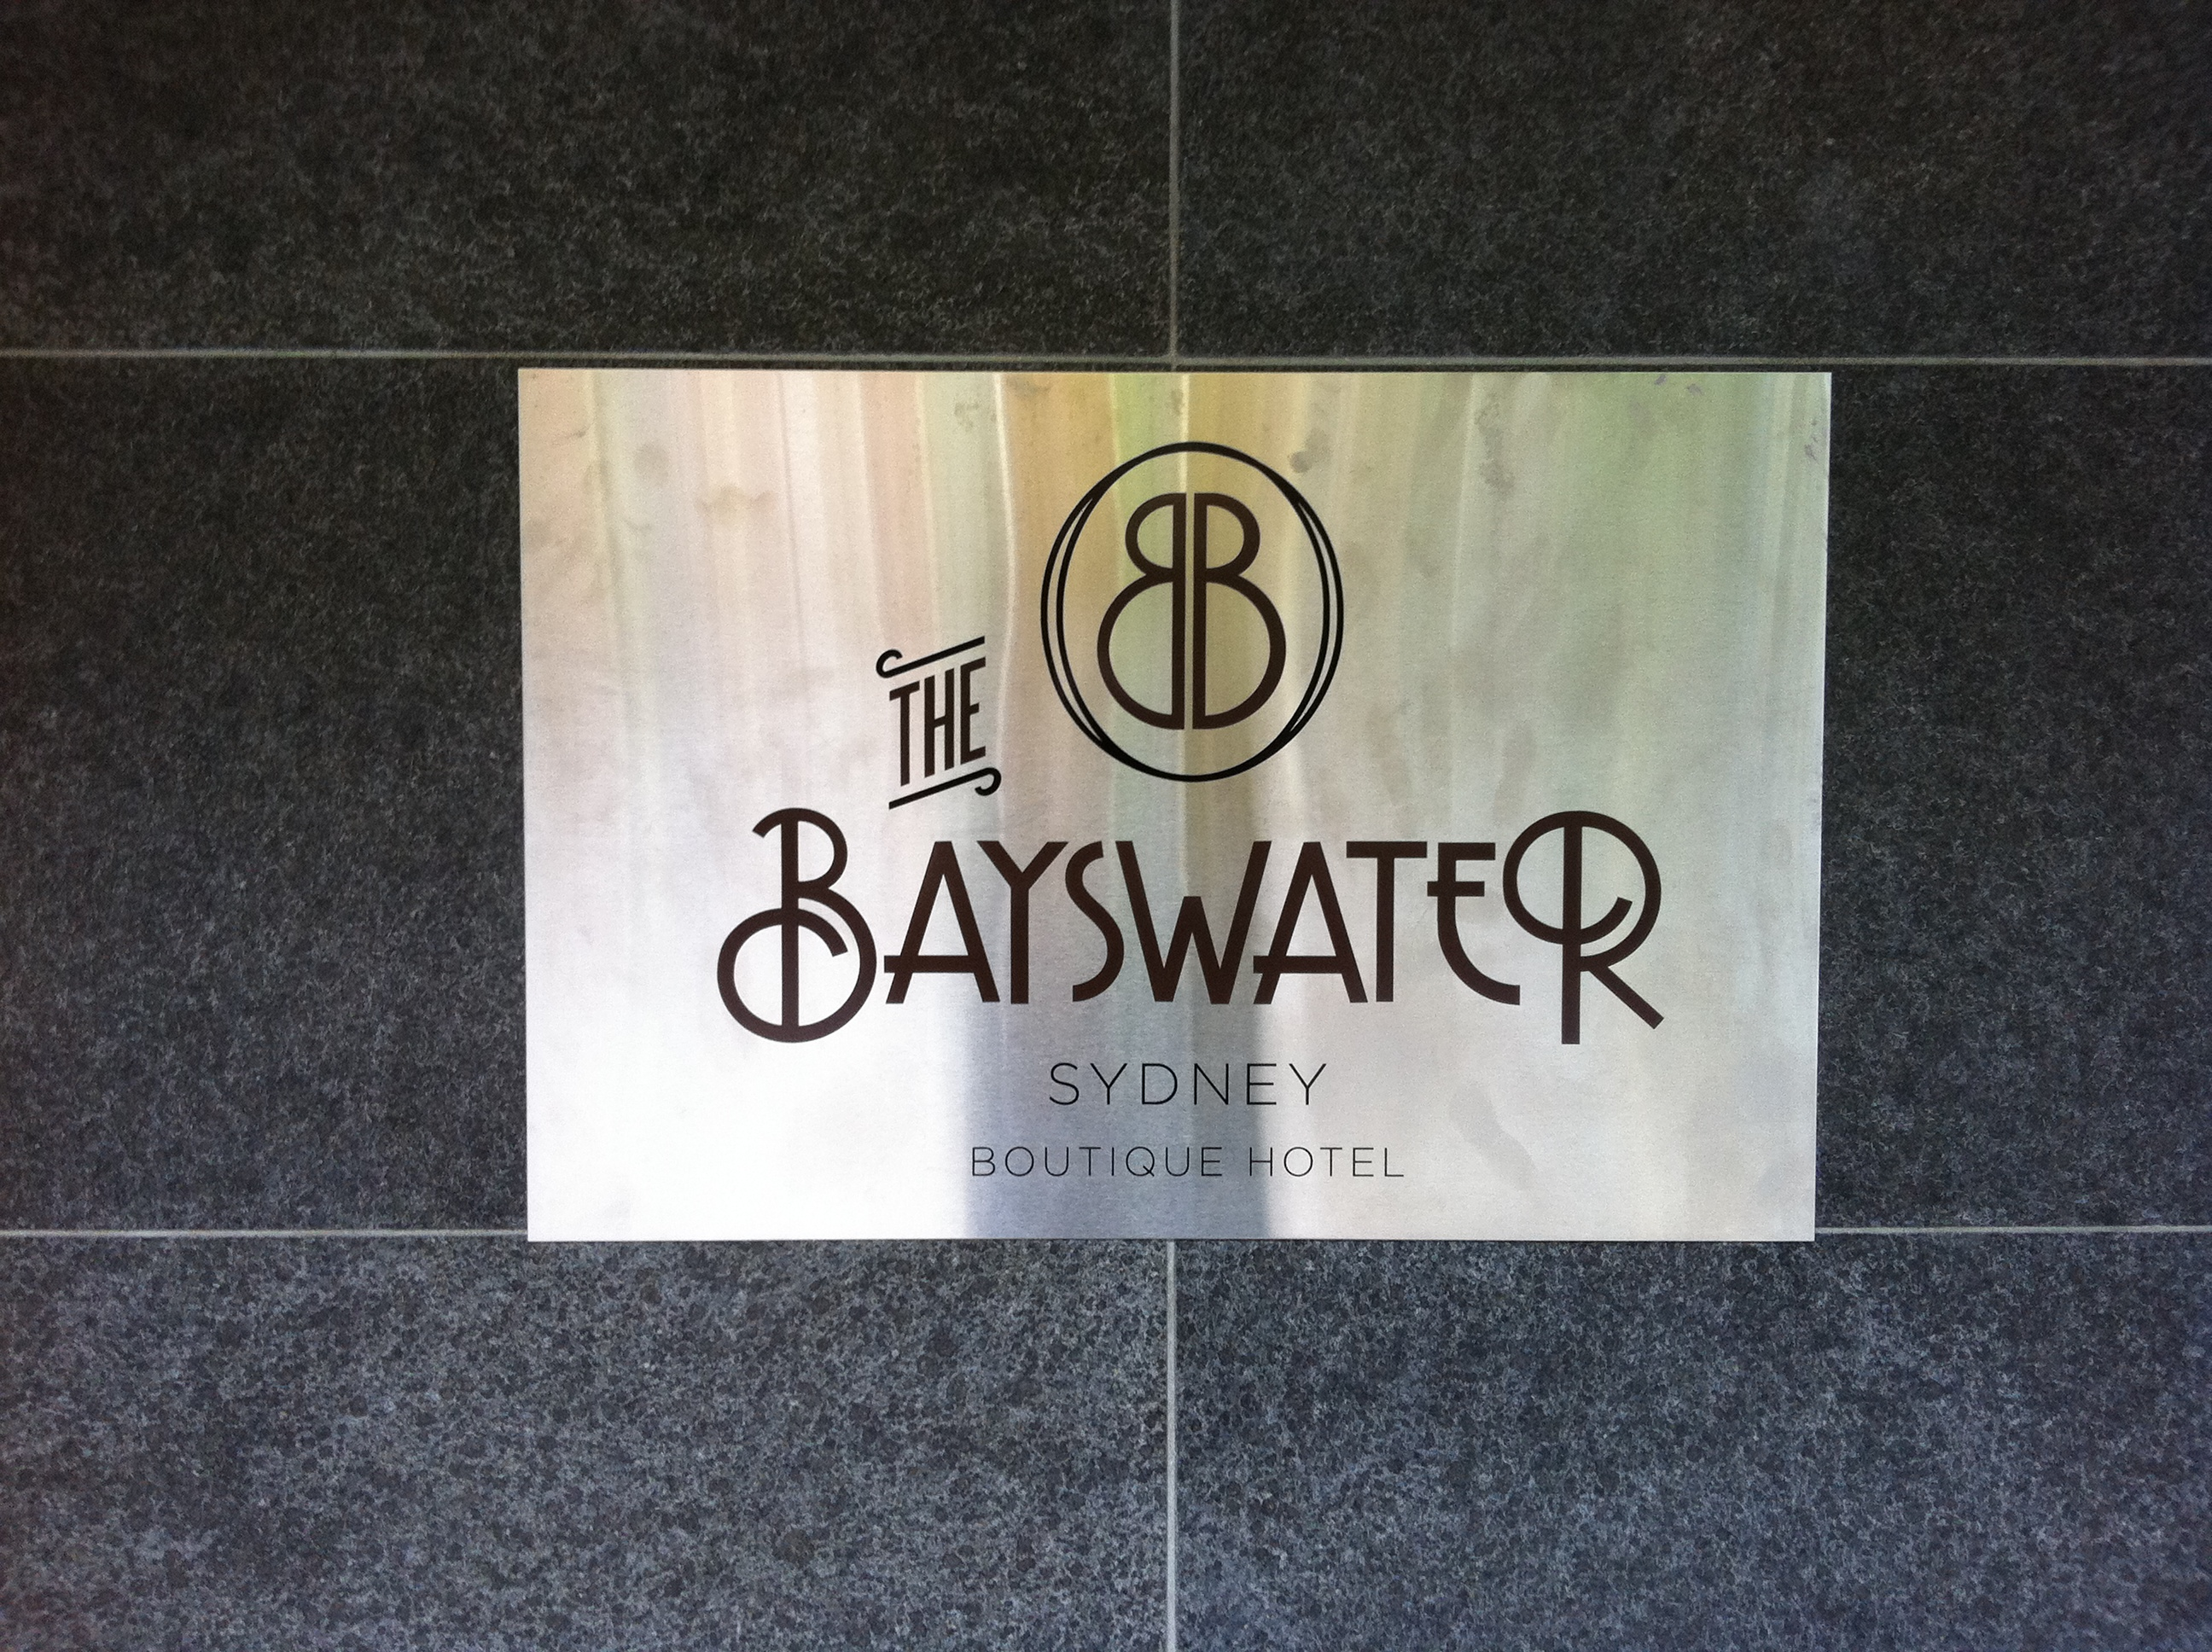 The Bayswater Sydney Logo and Images